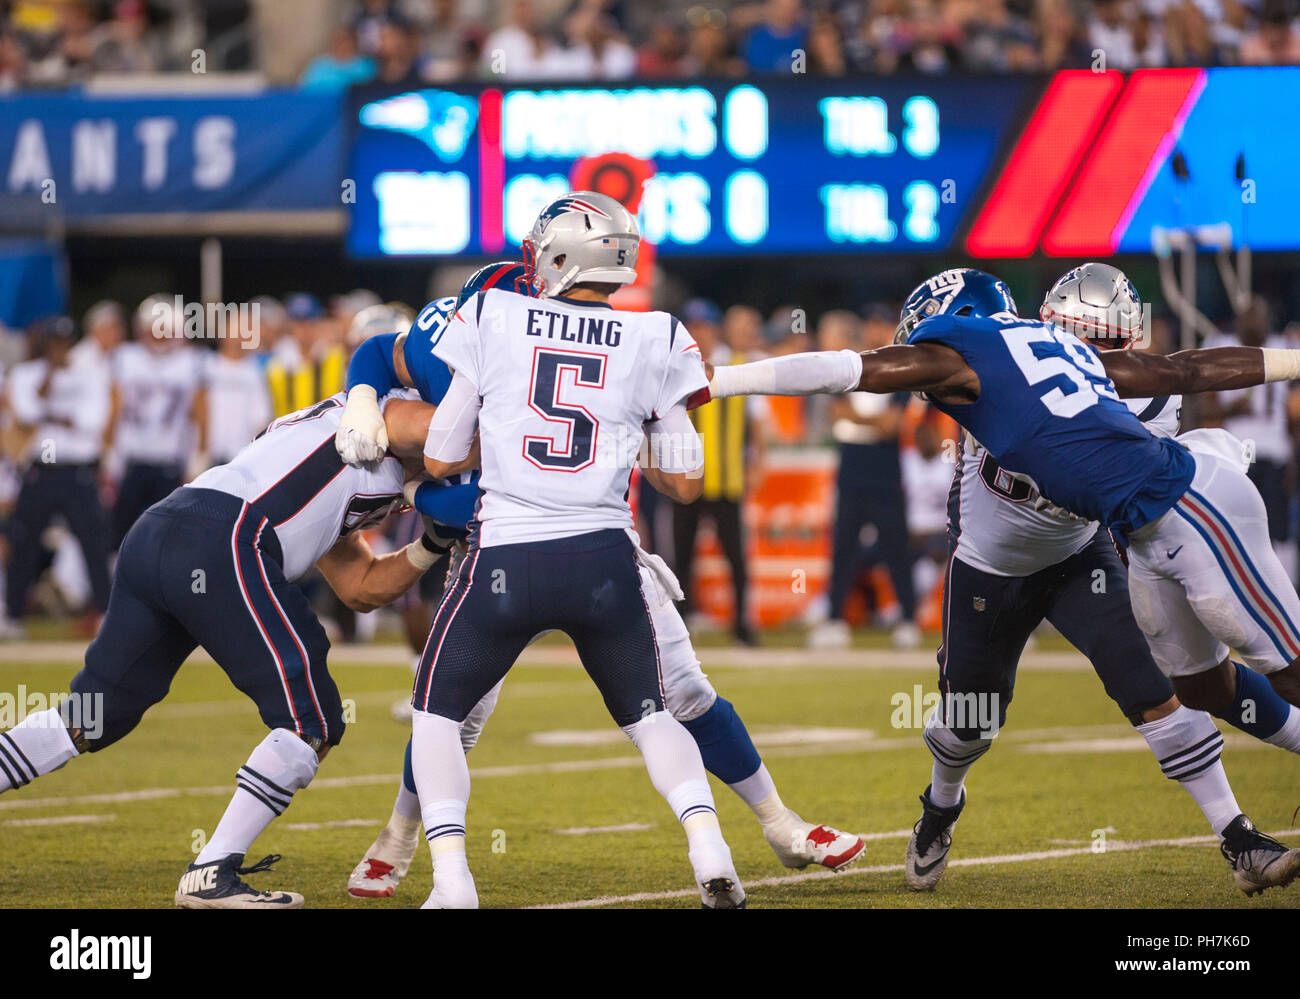 August 31, 2018 - East Rutherford, New Jersey, U.S. - New England Patriots quarterback Danny Etling (5) gets pressure from New York Giants linebacker Lorenzo Carter (59) during a preseason game between the New England Patriots and the New York Giants at MetLife Stadium in East Rutherford, New Jersey. Duncan Williams/CSM - Stock Image